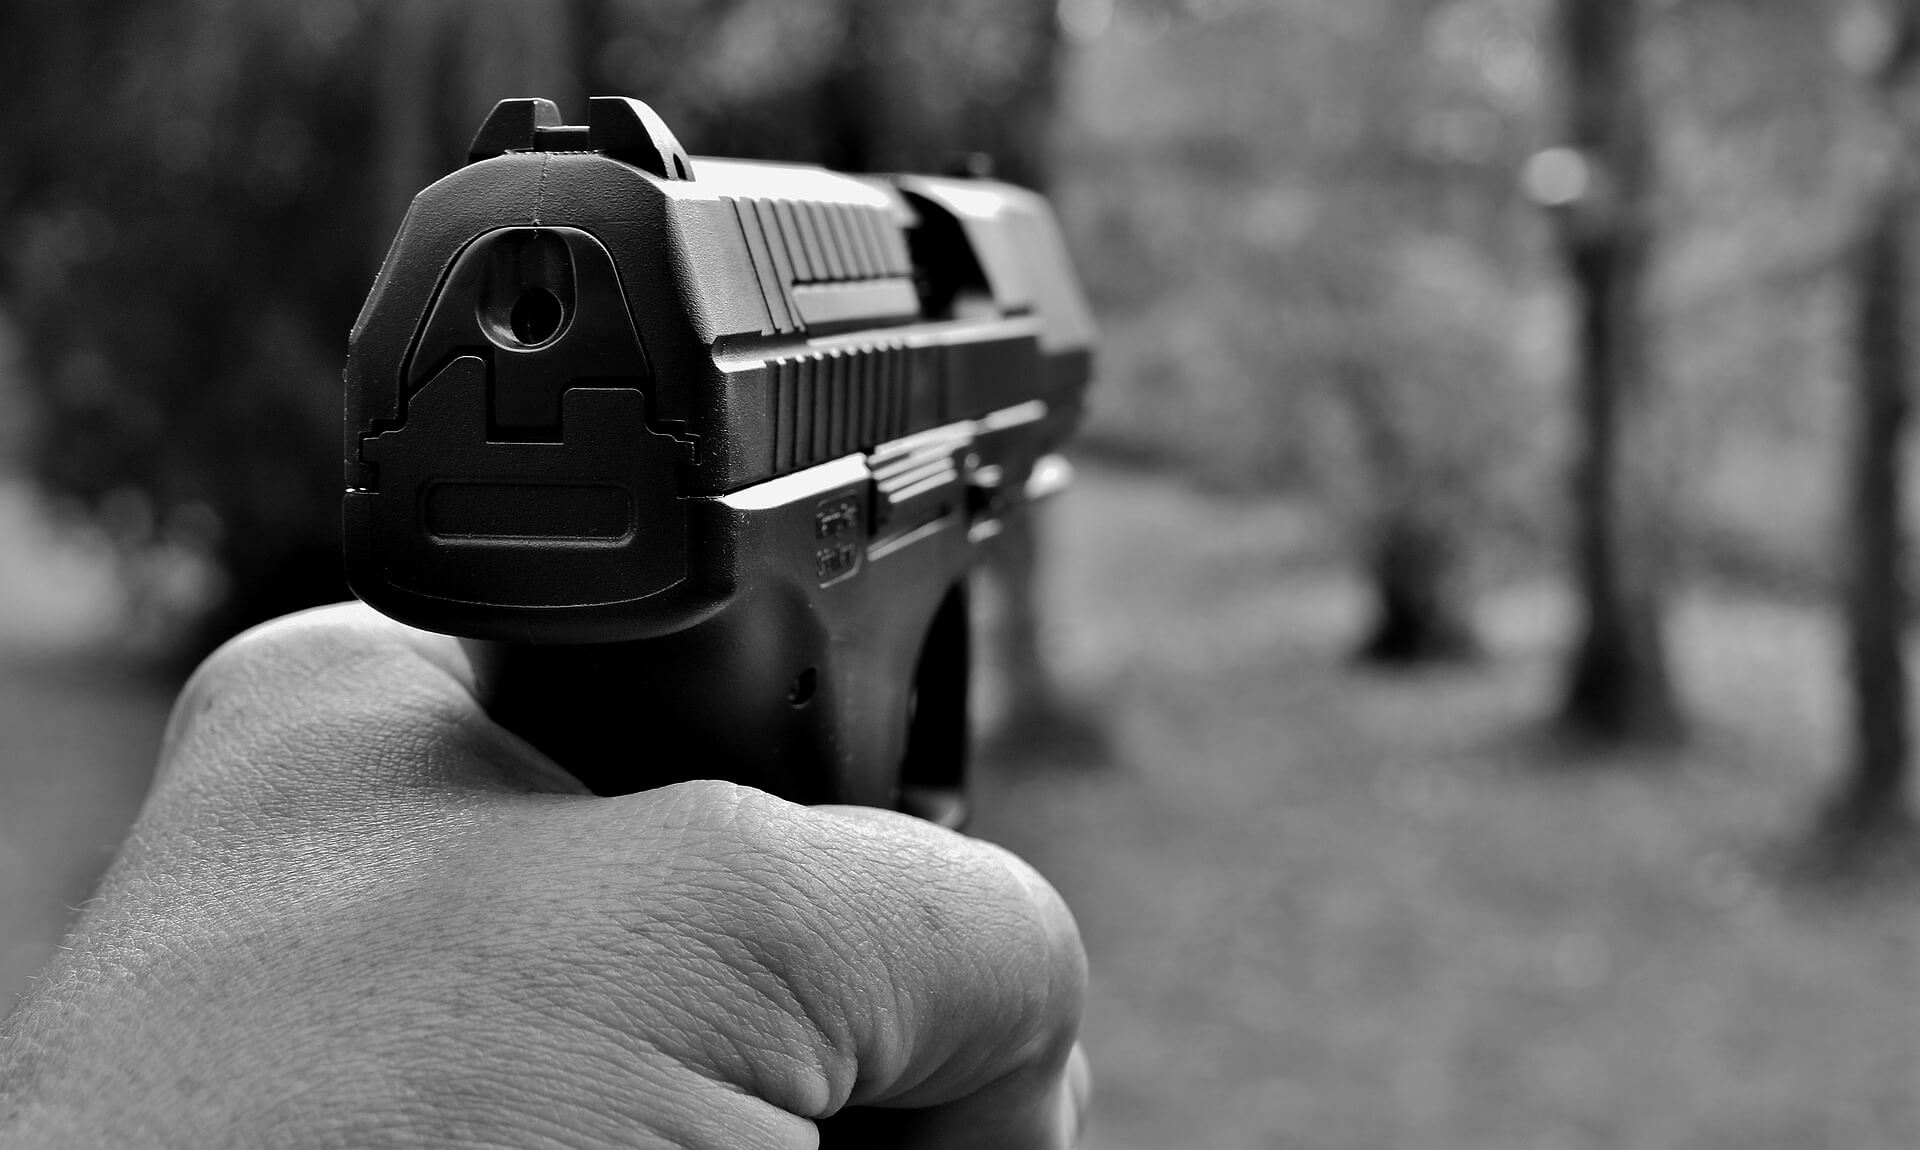 a hand holding and pointing a pistol